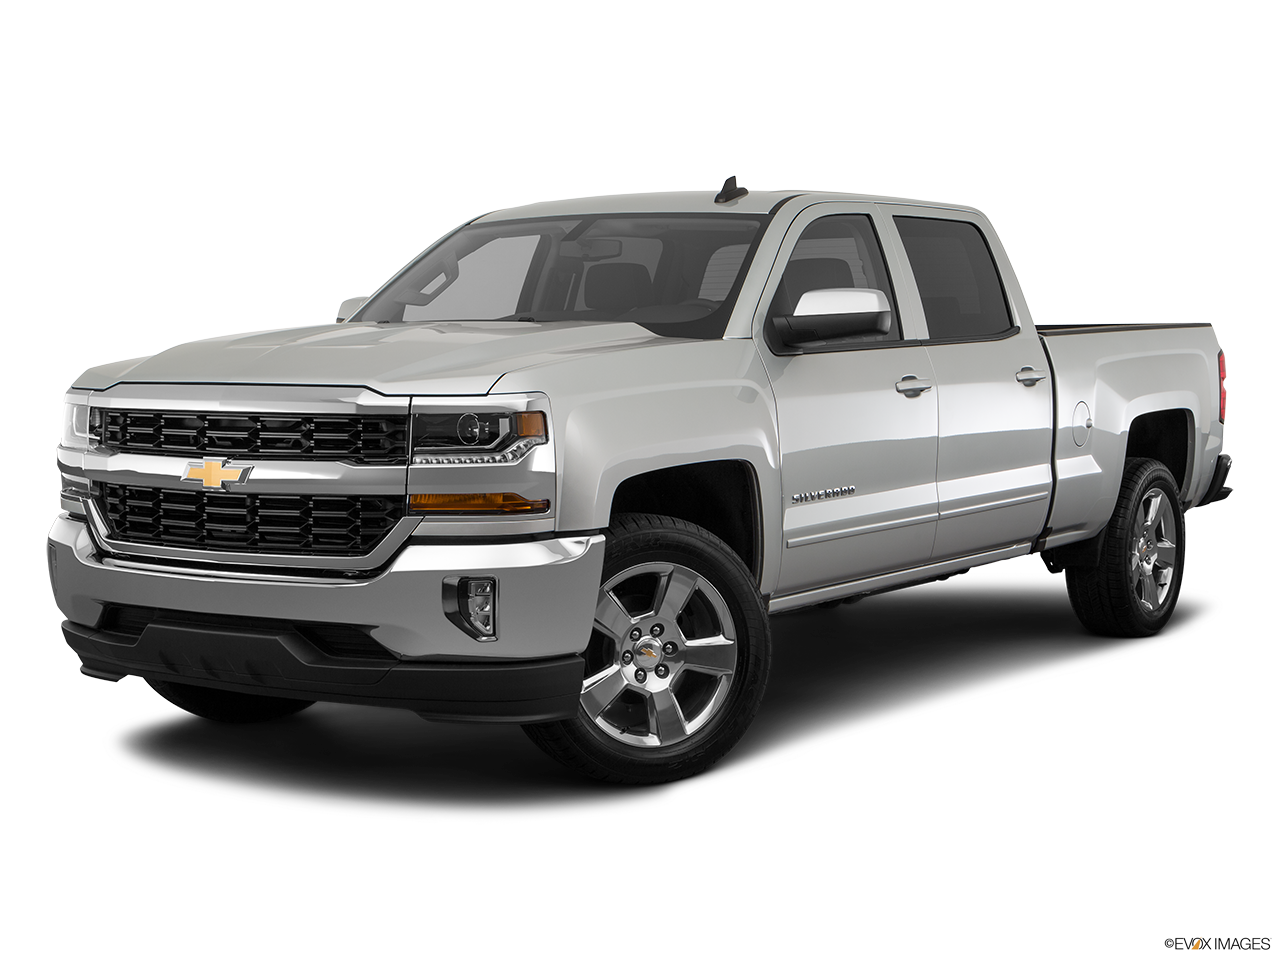 2017 chevrolet silverado 1500 riverside moss bros chevrolet. Black Bedroom Furniture Sets. Home Design Ideas